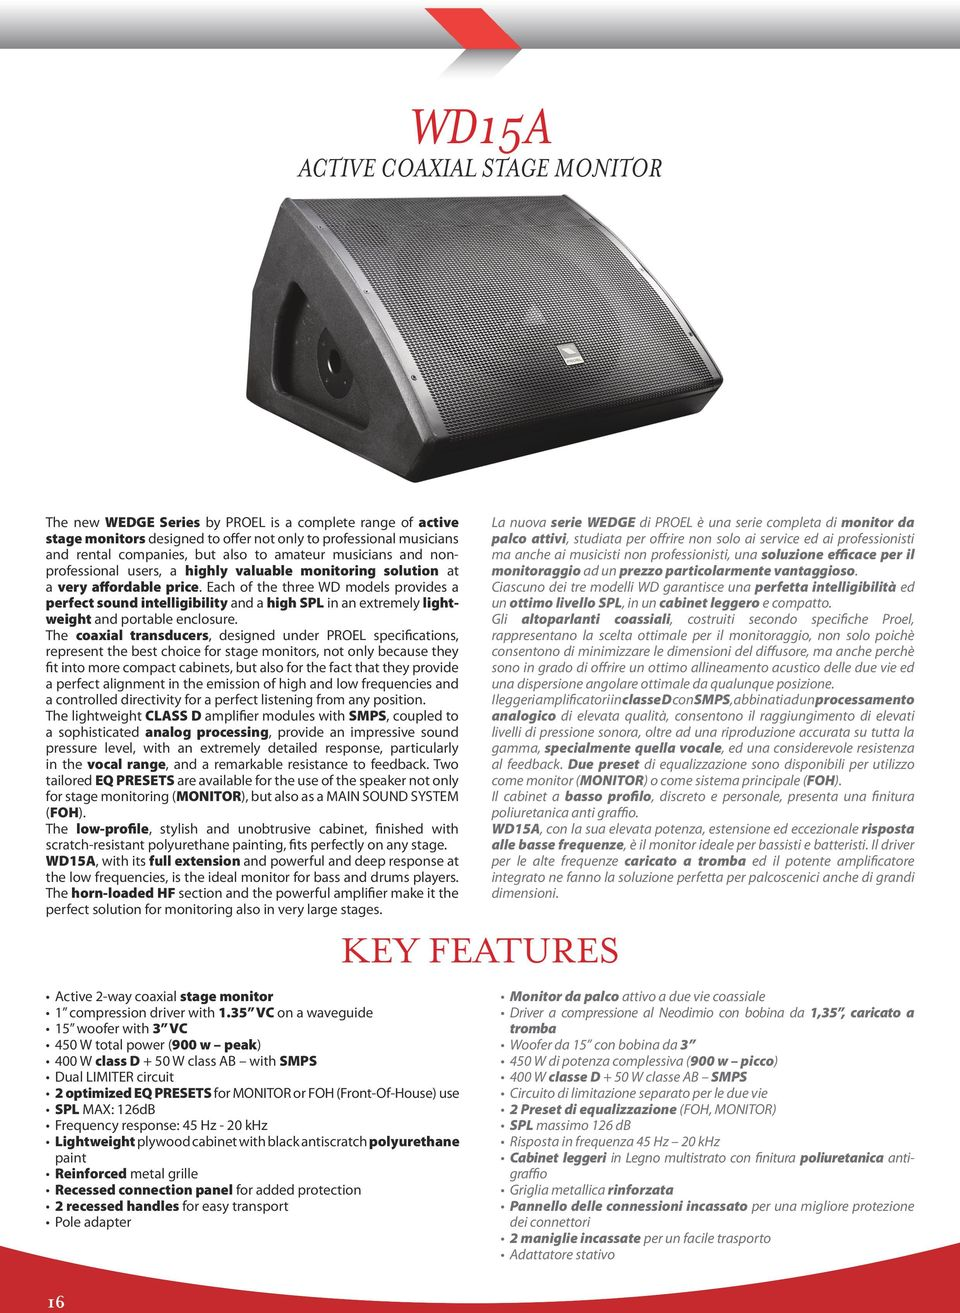 Each of the three WD models provides a perfect sound intelligibility and a high SPL in an extremely lightweight and portable enclosure.